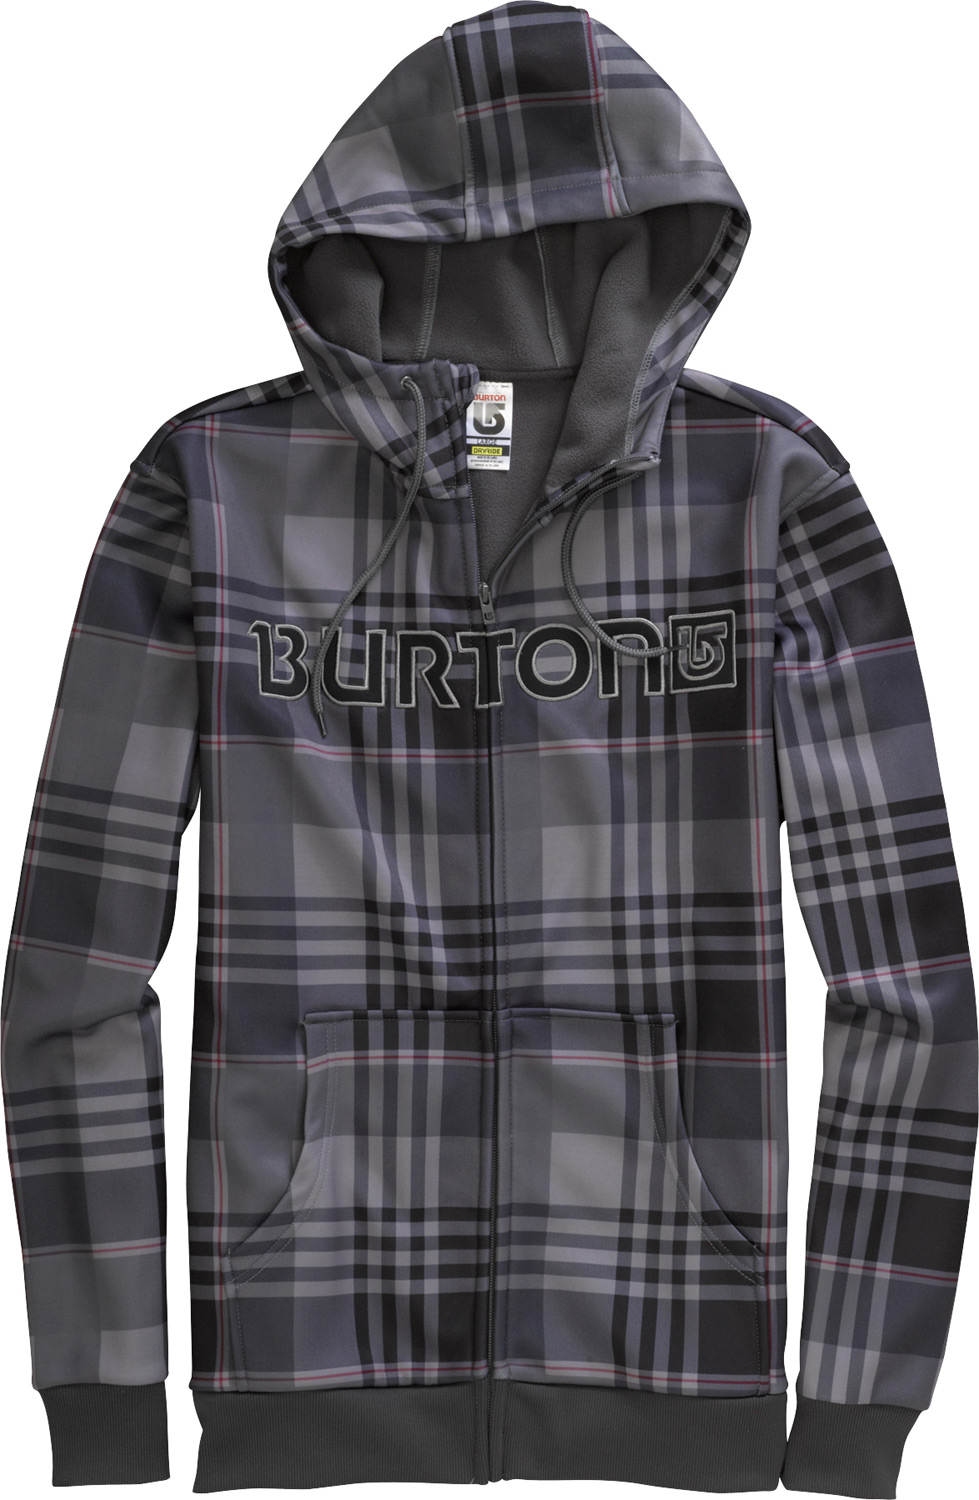 Snowboard The last hoodie you'll ever need. Ride, hike or hang without succumbing to the chilly side effects of cotton.Key Features of the Burton Bonded Hoodie: DRYRIDE Thermex Bonded Hard-Surface Fleece with Brushed Backer Kangaroo Hand Warmer Pockets Ribbed Cuffs and Hem Hidden Side Seam Stash Pocket Word Marker or Process Logo Graphics S-XL - $39.95